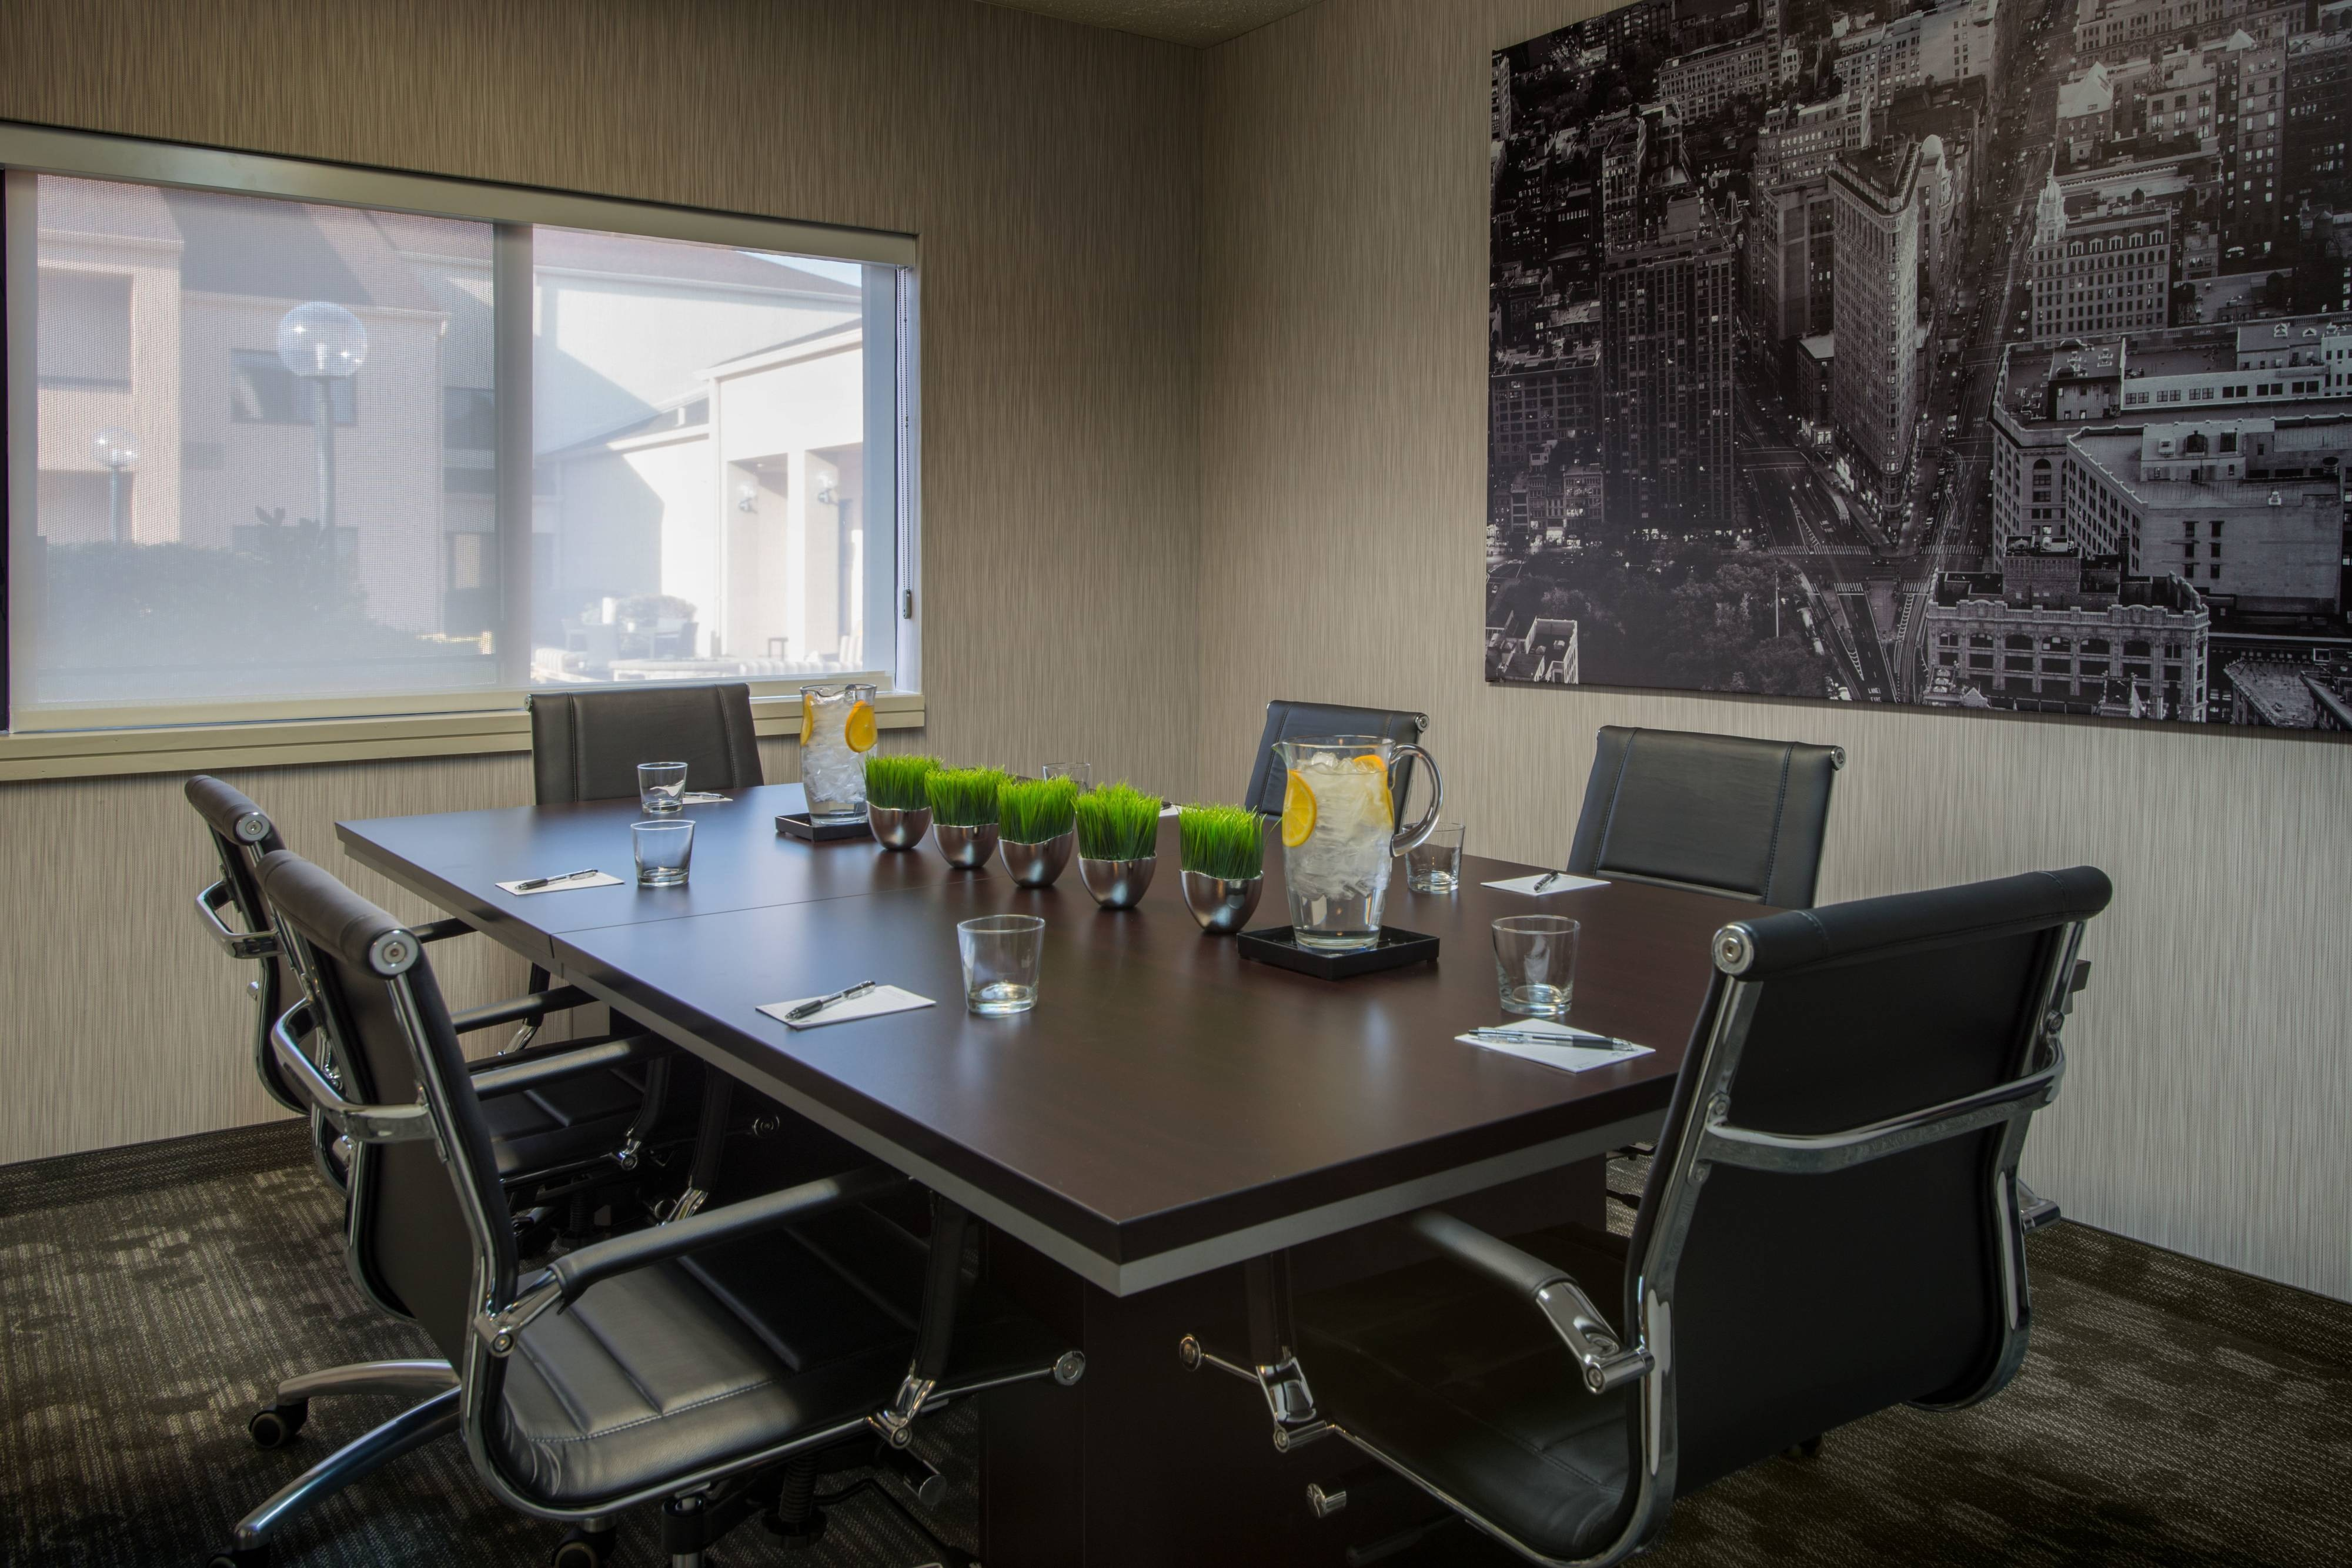 Meeting Rooms in Addison Texas